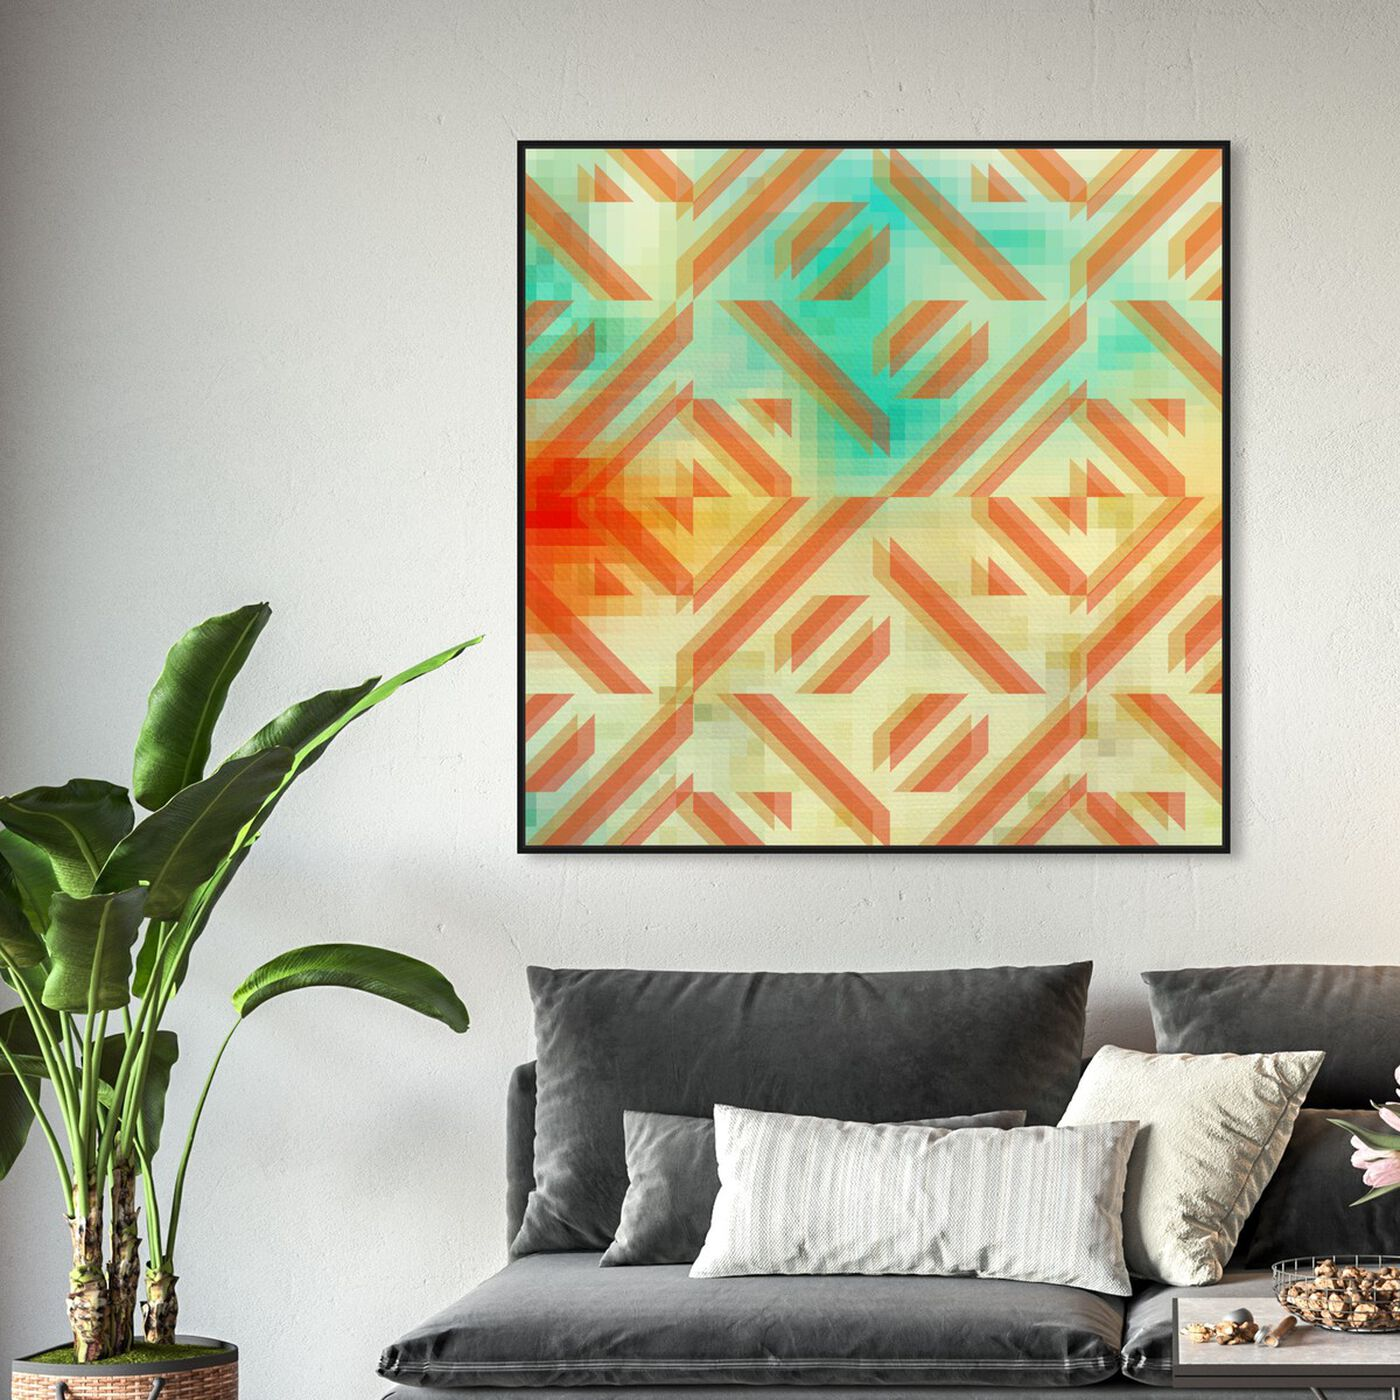 Hanging view of Gaze featuring abstract and geometric art.